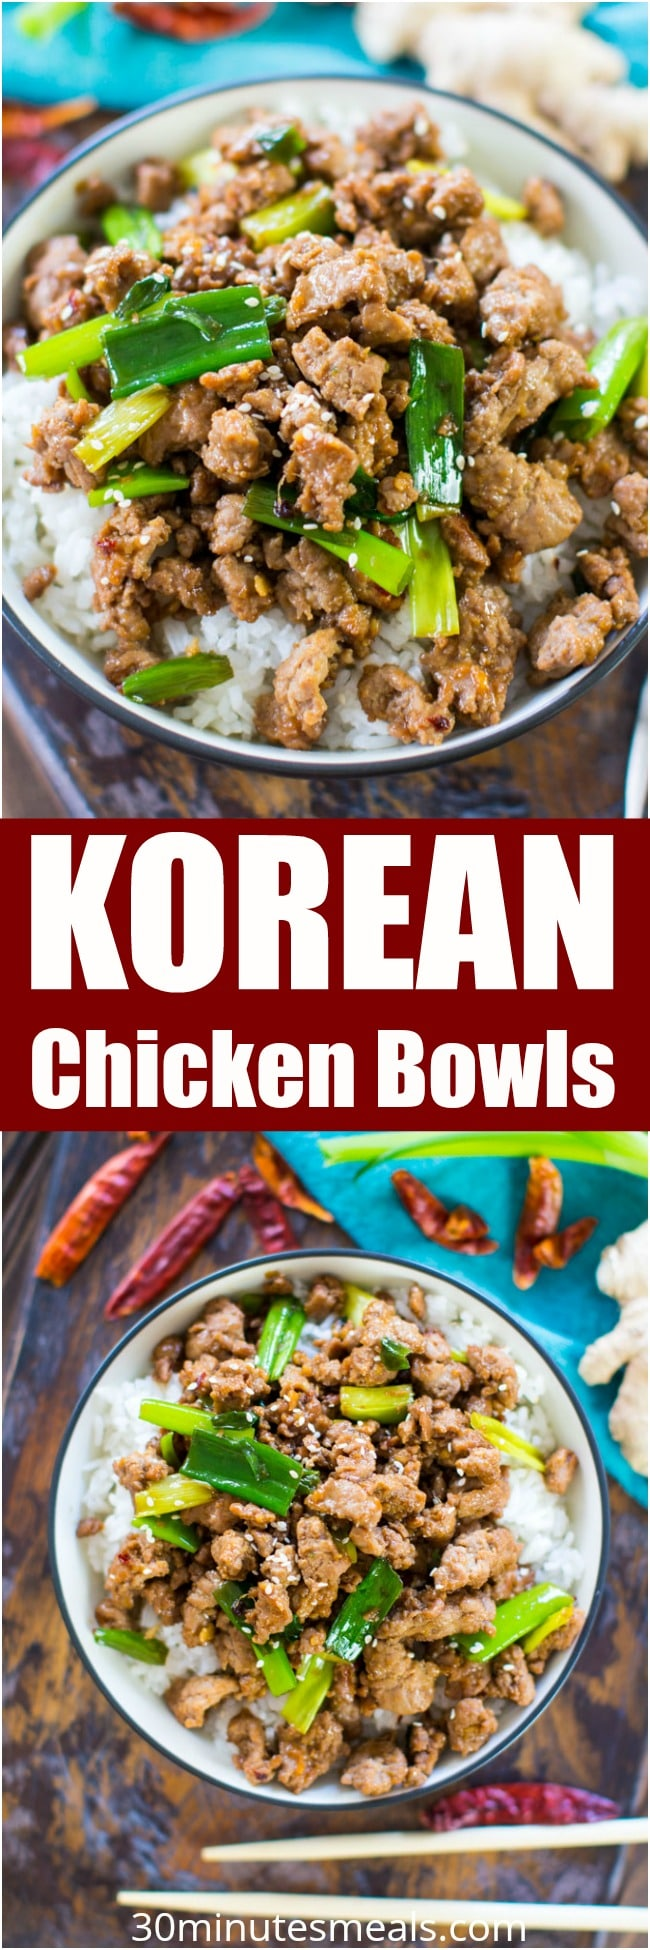 Korean Chicken Bowls are one of the easiest and tastiest dishes you can make in just under 20 minutes. Made in one pan with easy ingredients.